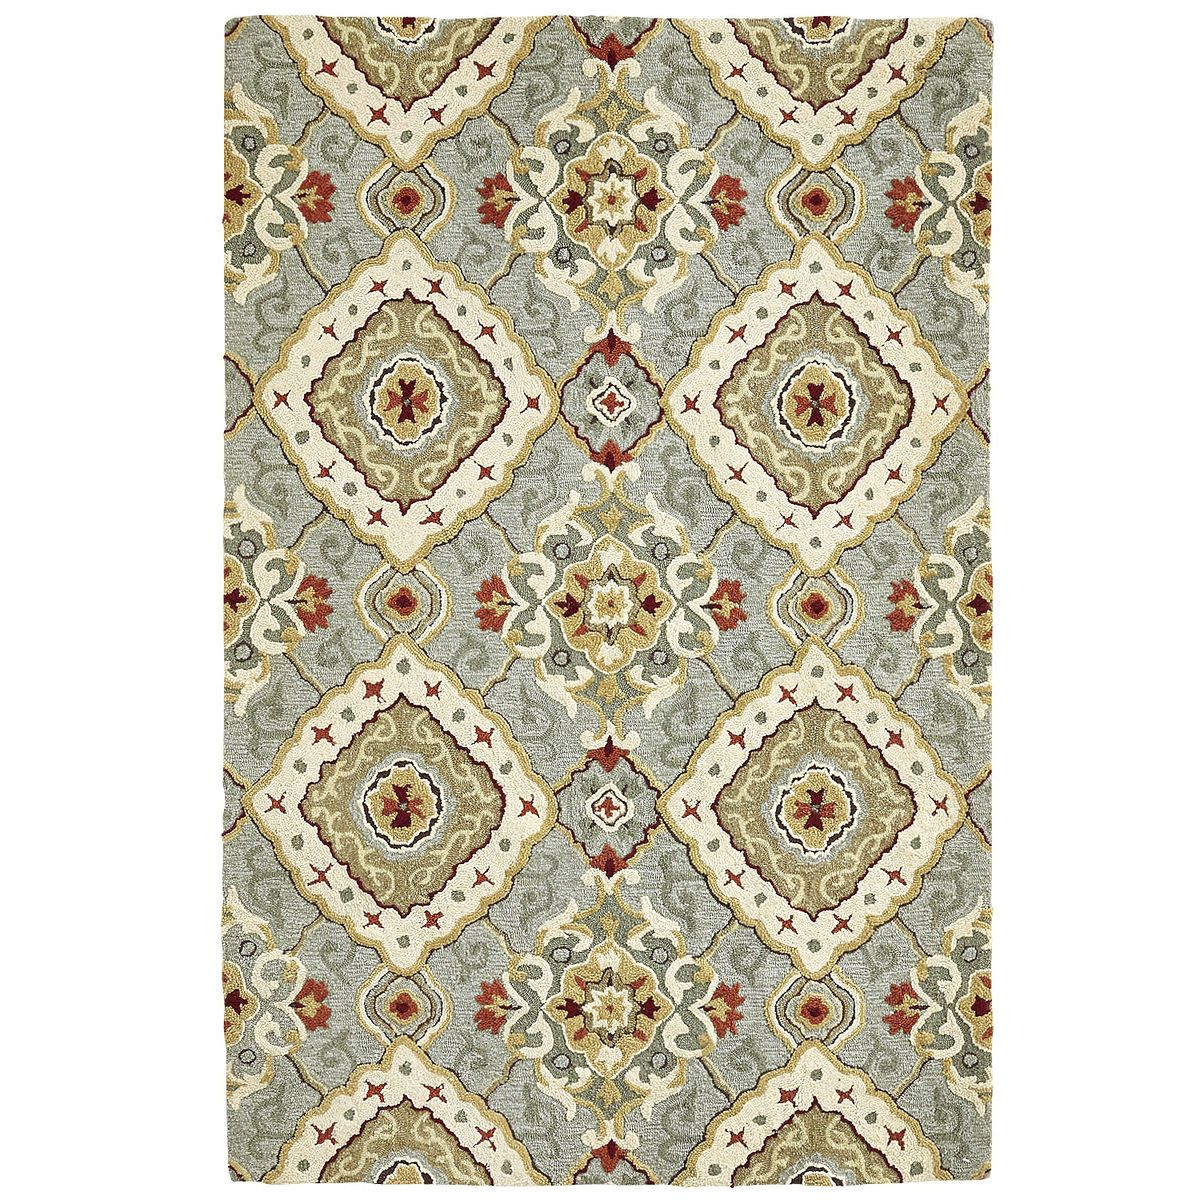 Don T Adjust Your Screen Our Luxuriant Rug Really Is Covered In A Diamond Scroll Pattern That Looks Like A Million Bucks Without Co Blue Rug Rugs Diamond Rugs